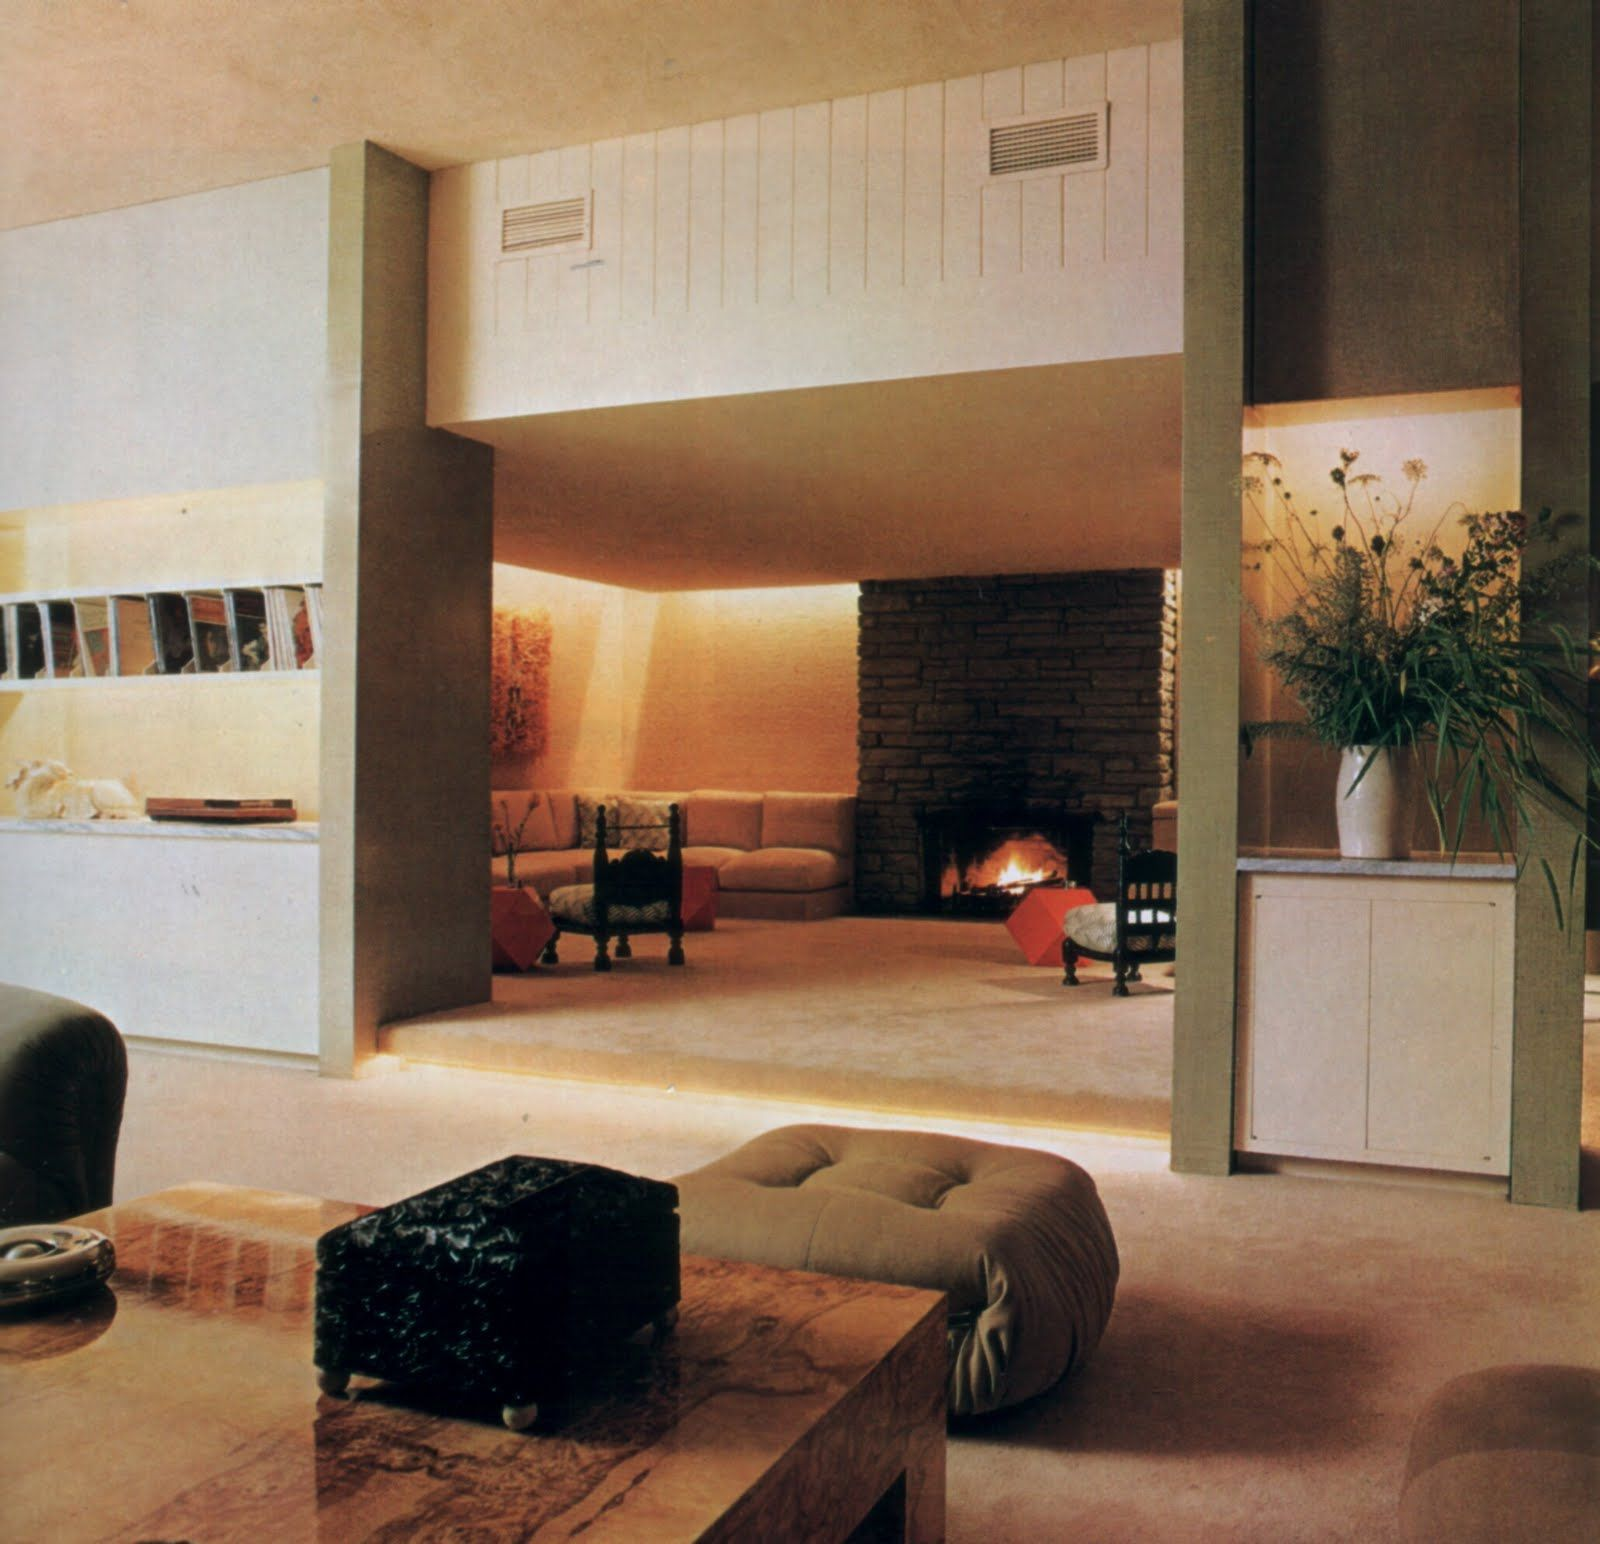 David Whitcomb Architectural Digest March 1979 Appartement